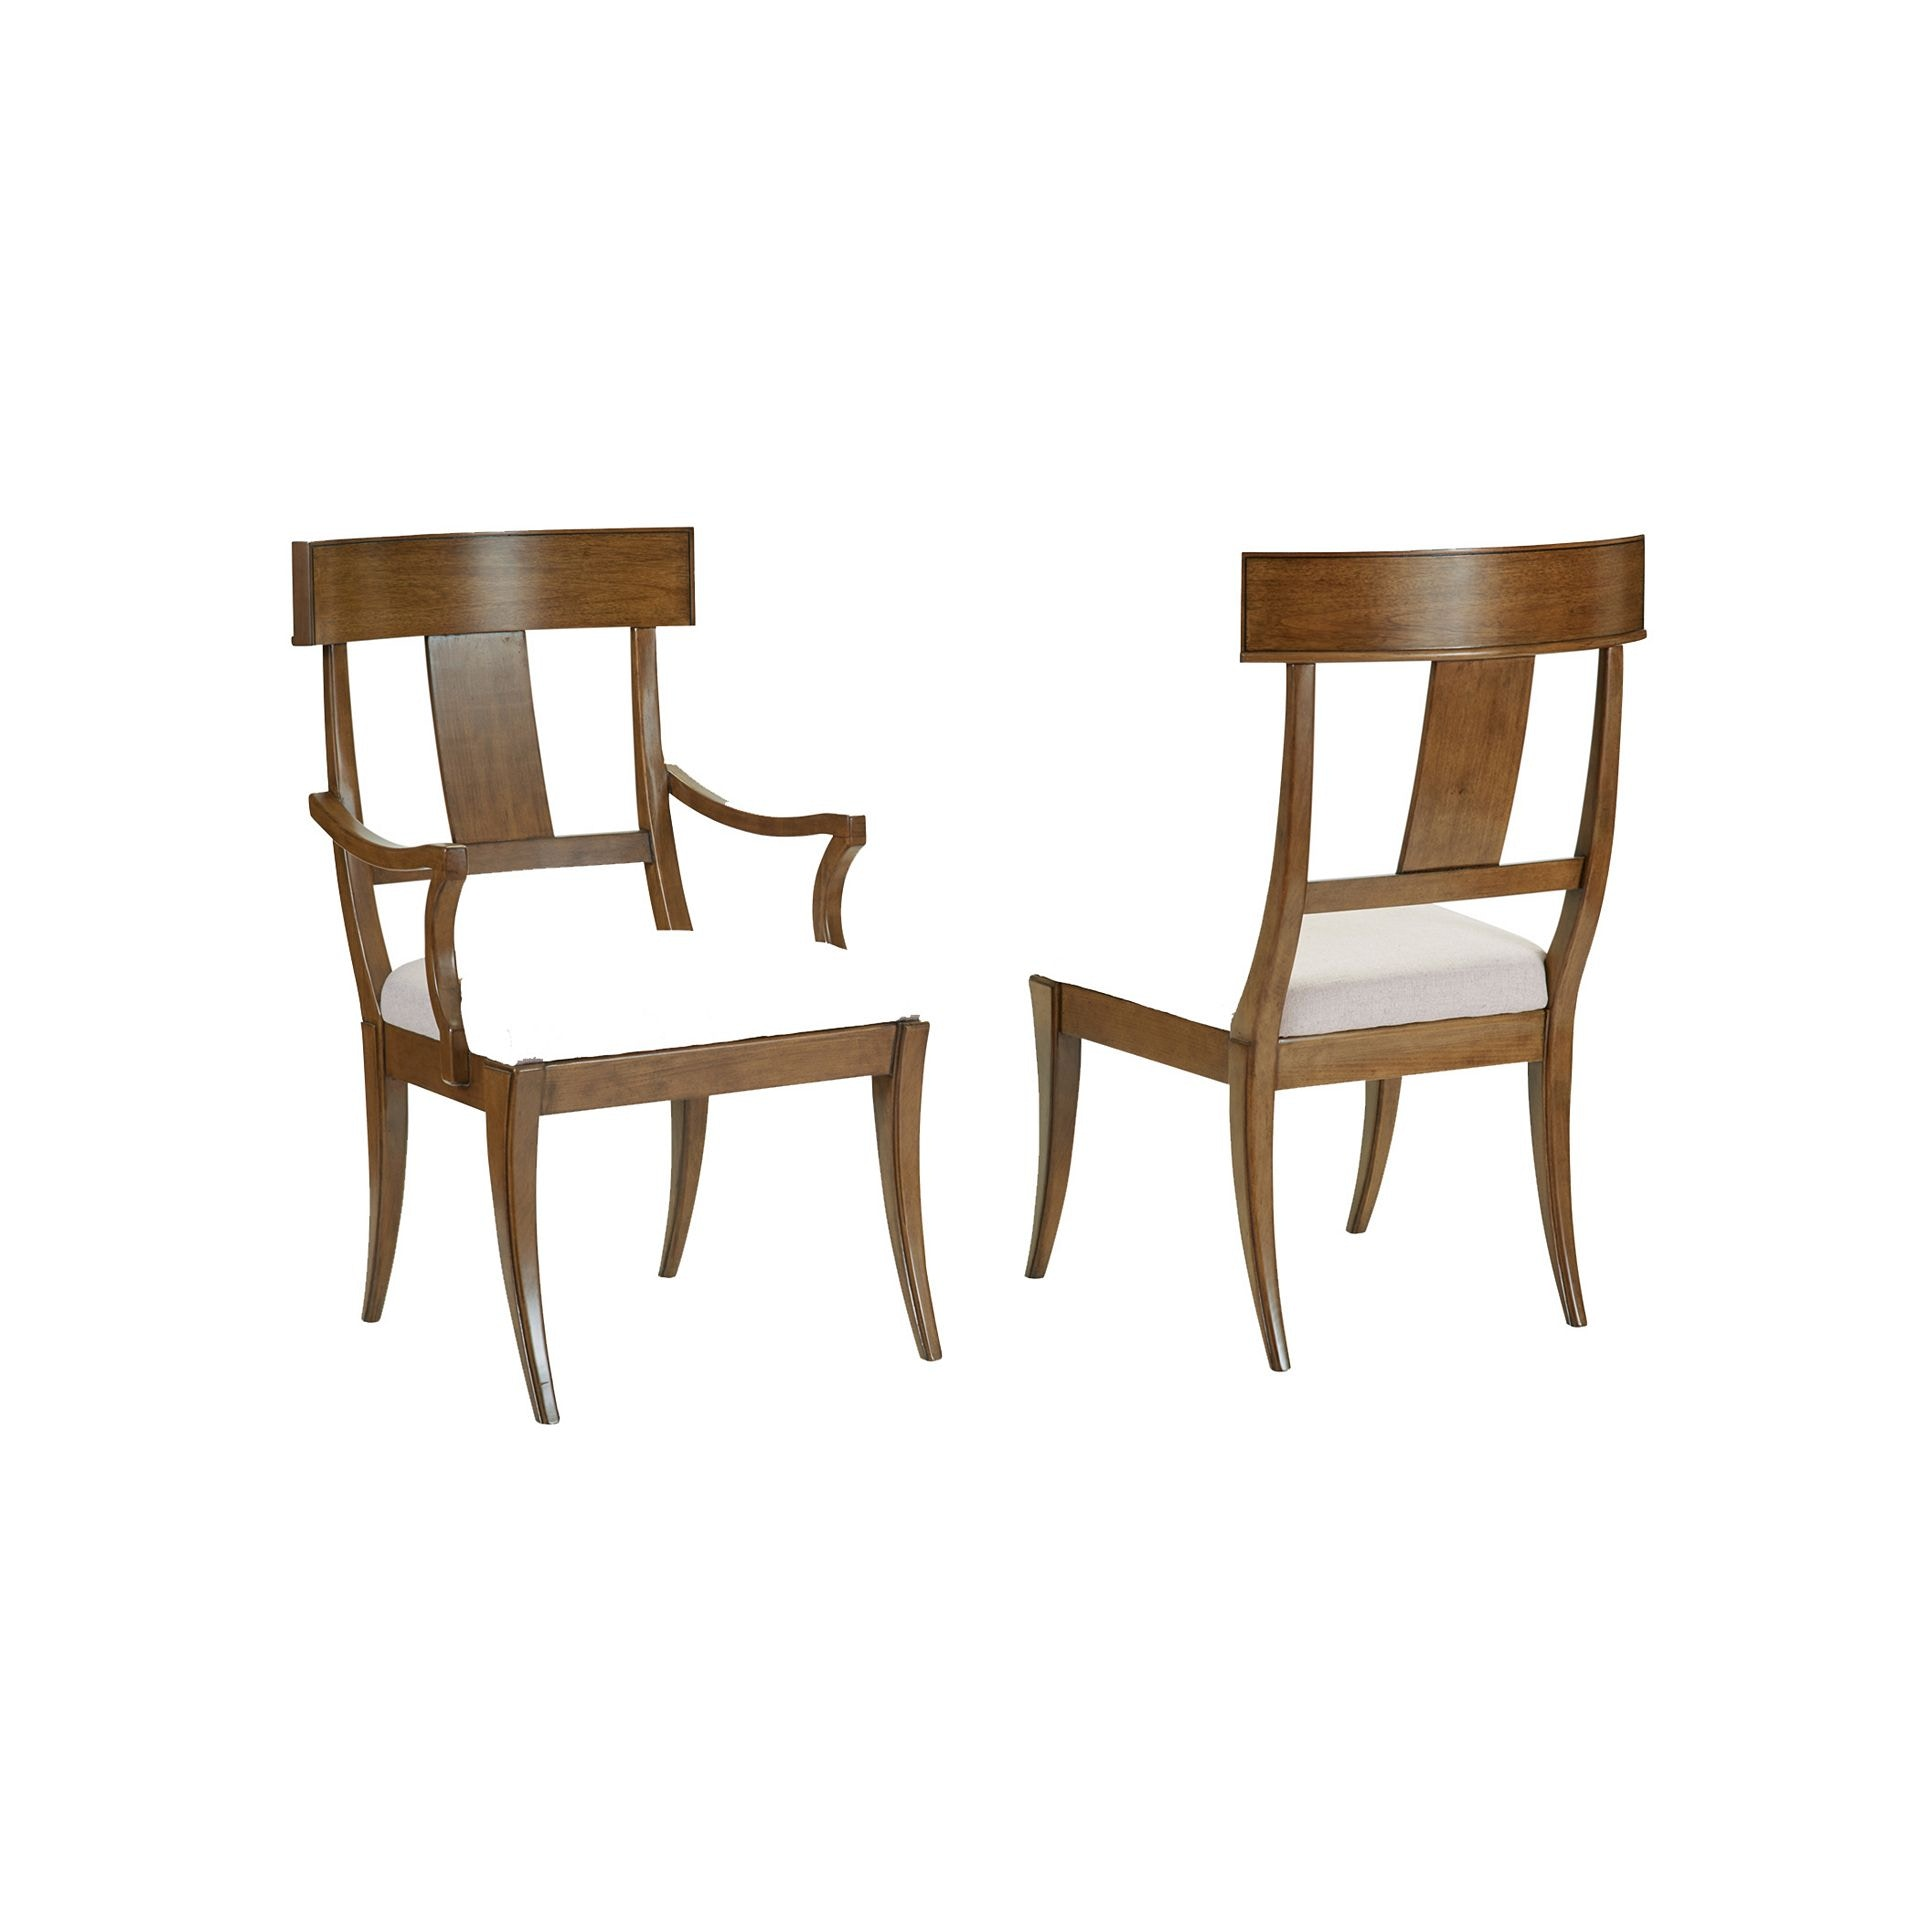 Henredon Furniture Acquisitions By Henredon Klismos Arm Chair 3403 27 689